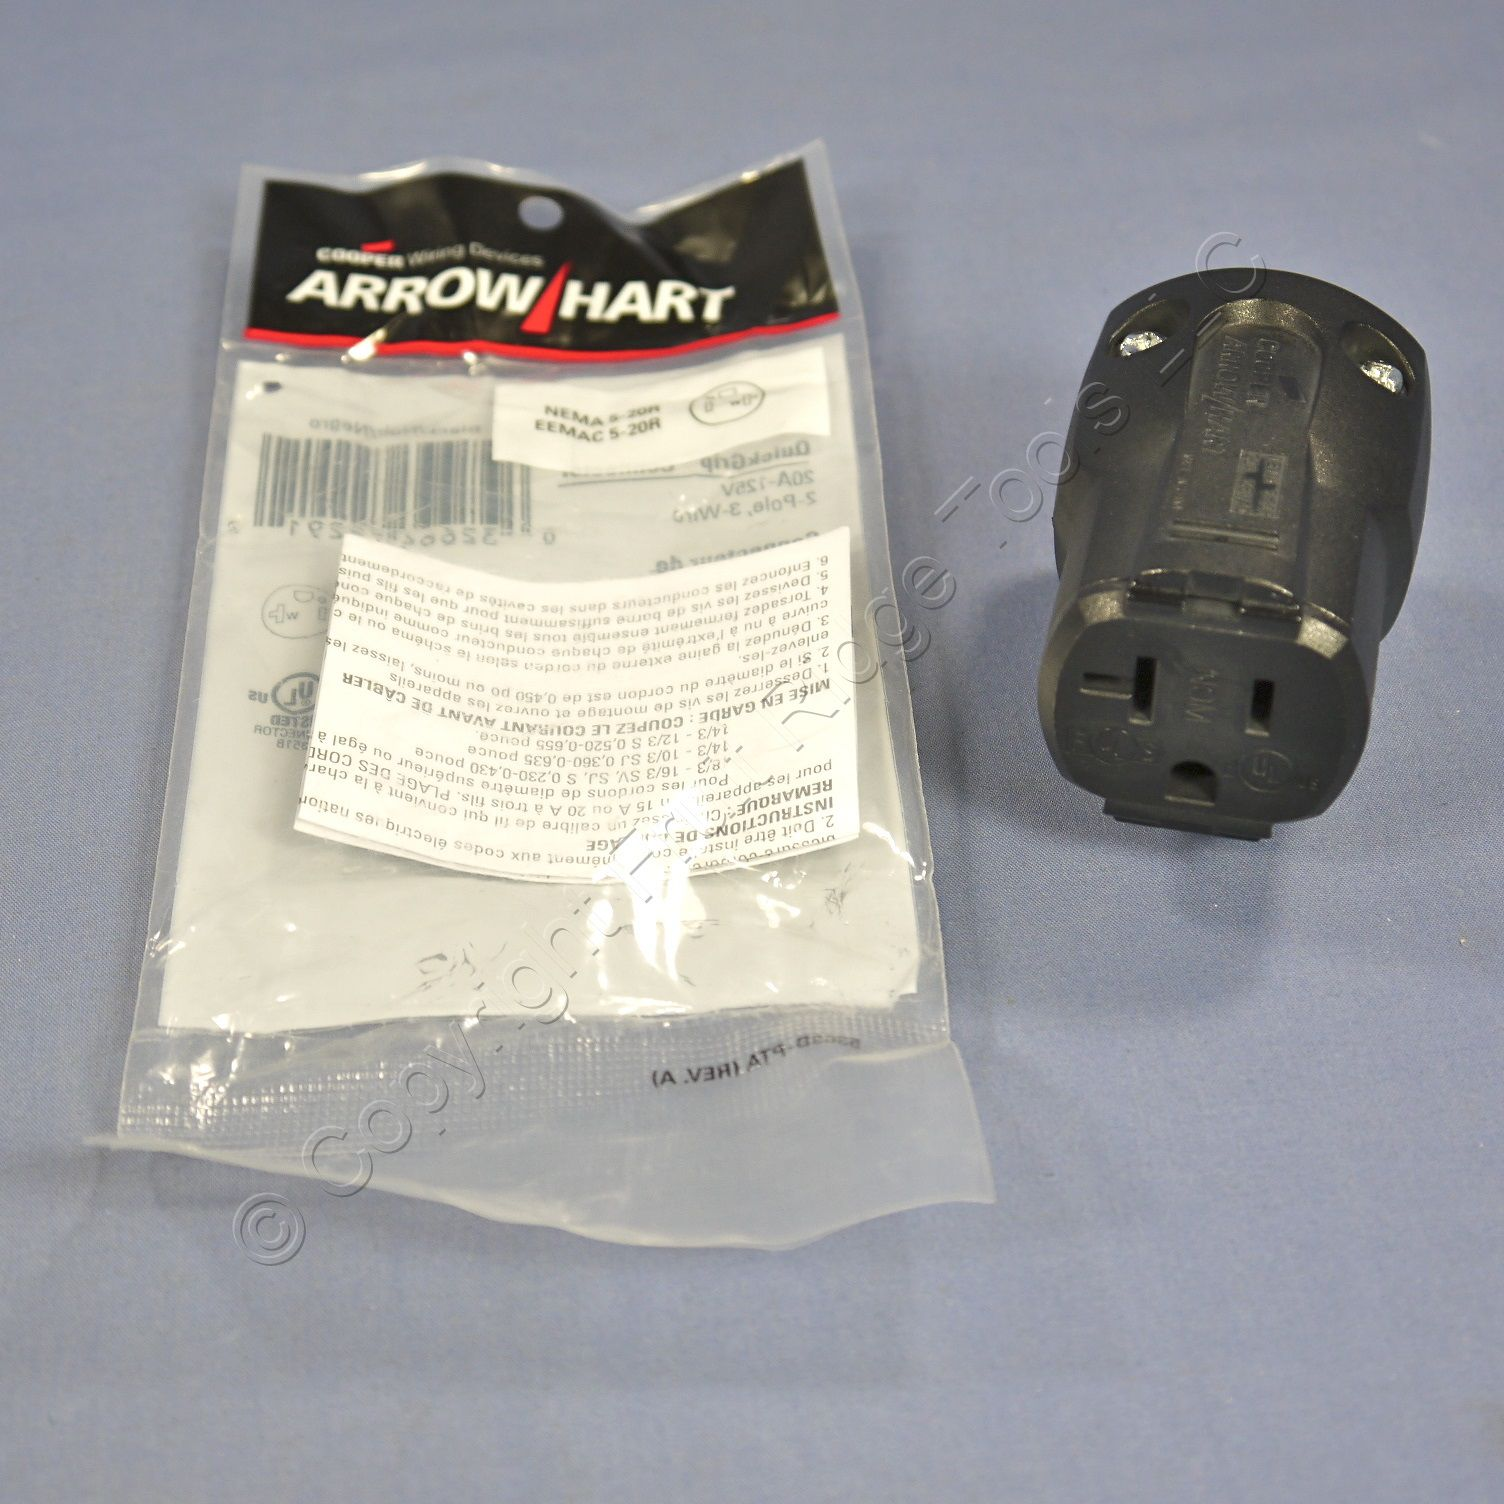 Cooper Arrow Hart Black QuickGrip Straight Connector 2P3W NEMA 5-20 20A 125V AH5369BK